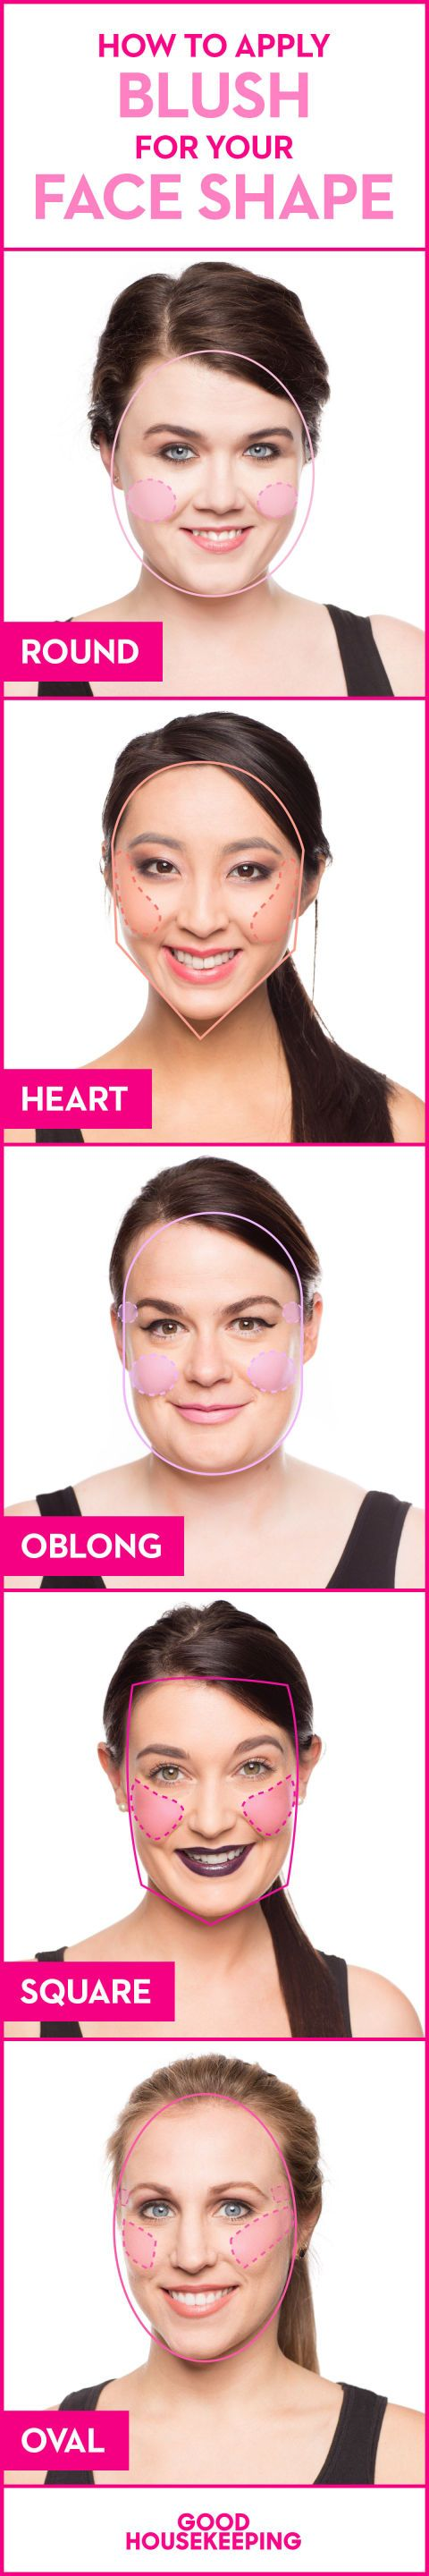 Of all the beauty products out there, blush is one of the most effective at changing your whole look — just a pinch can make you look healthier, dewier, and more youthful. At the same time, it's one of the most confusing for many makeup users. Here's how to make this super flattering, and surprisingly versatile, product work for your face shape, skin tone, and lifestyle.